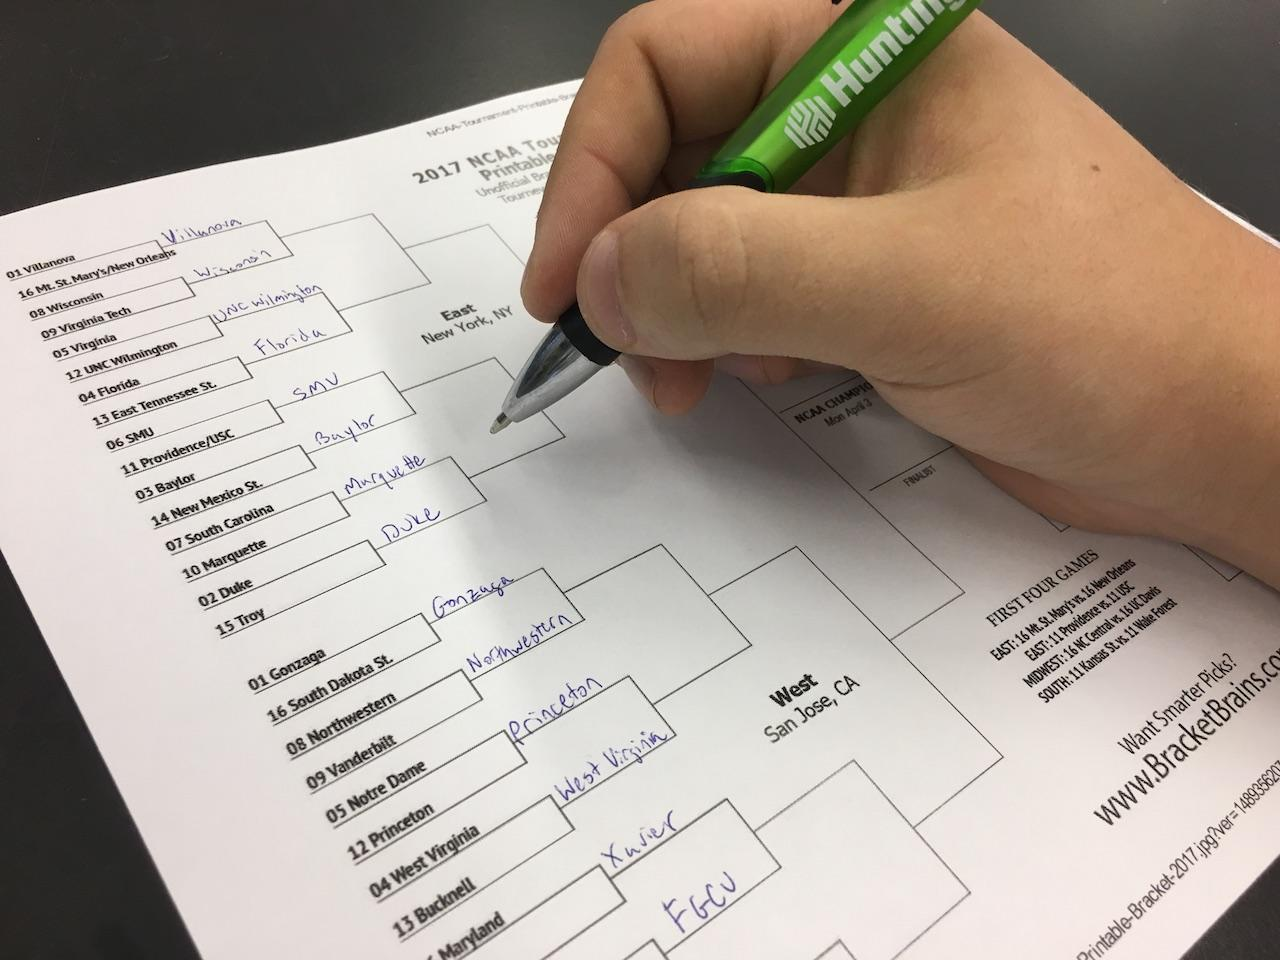 Millions of people filled out brackets this year and billions of dollars will be wasted watching the games.